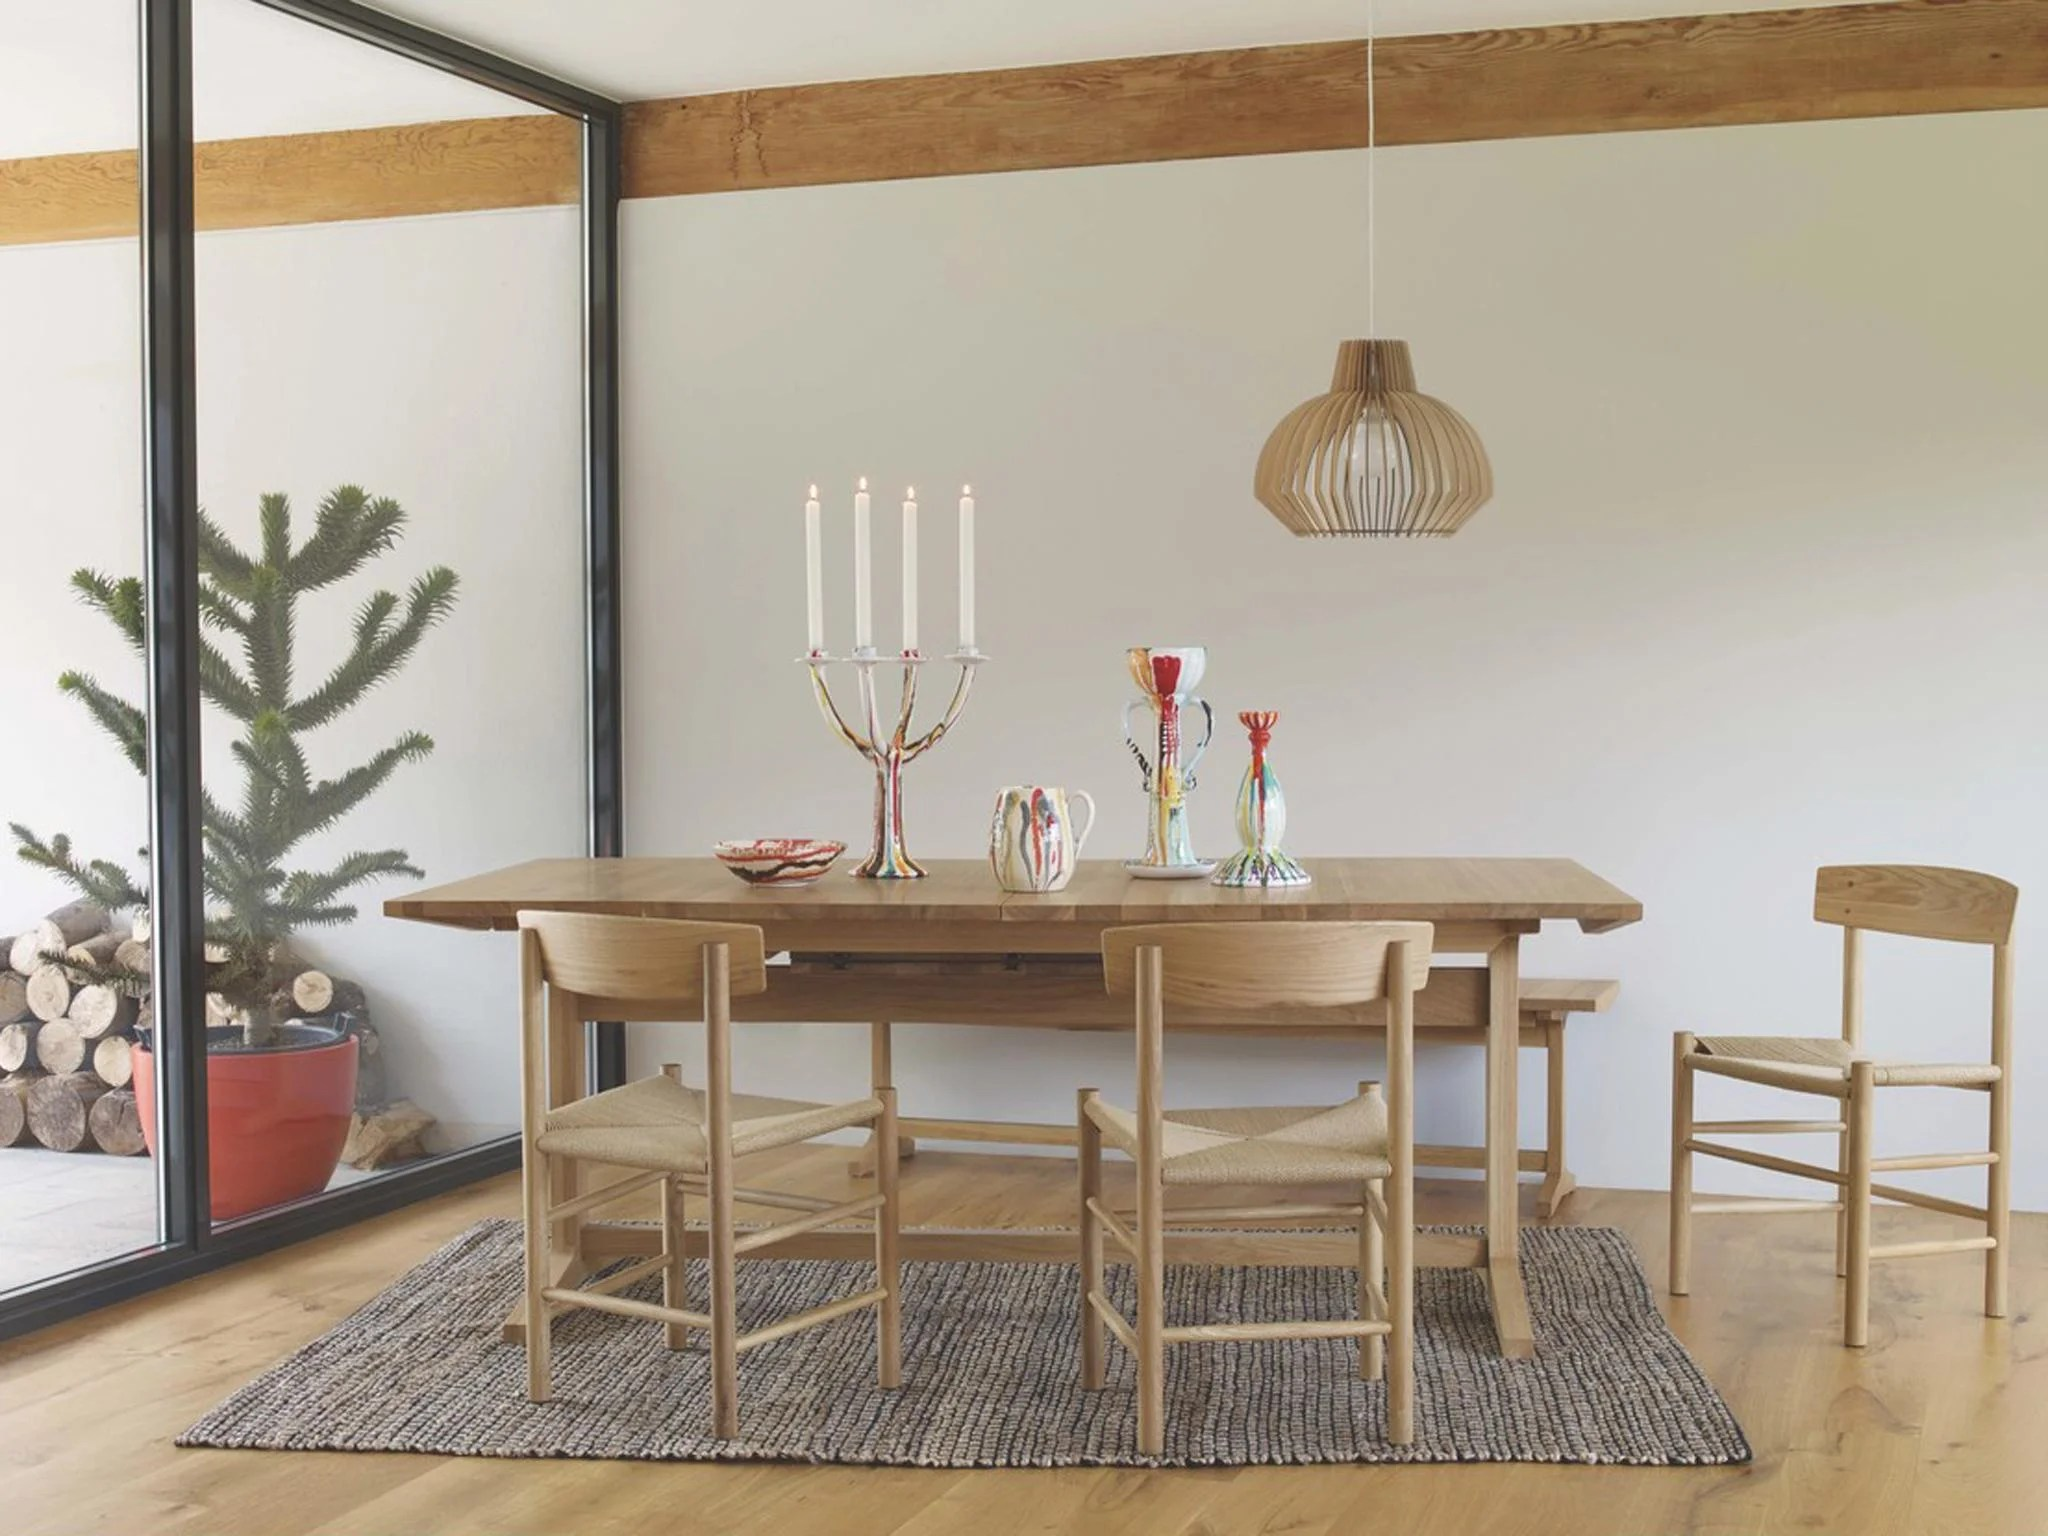 Extendable Dining Table Ikea 10 Best Extendable Dining Tables | The Independent